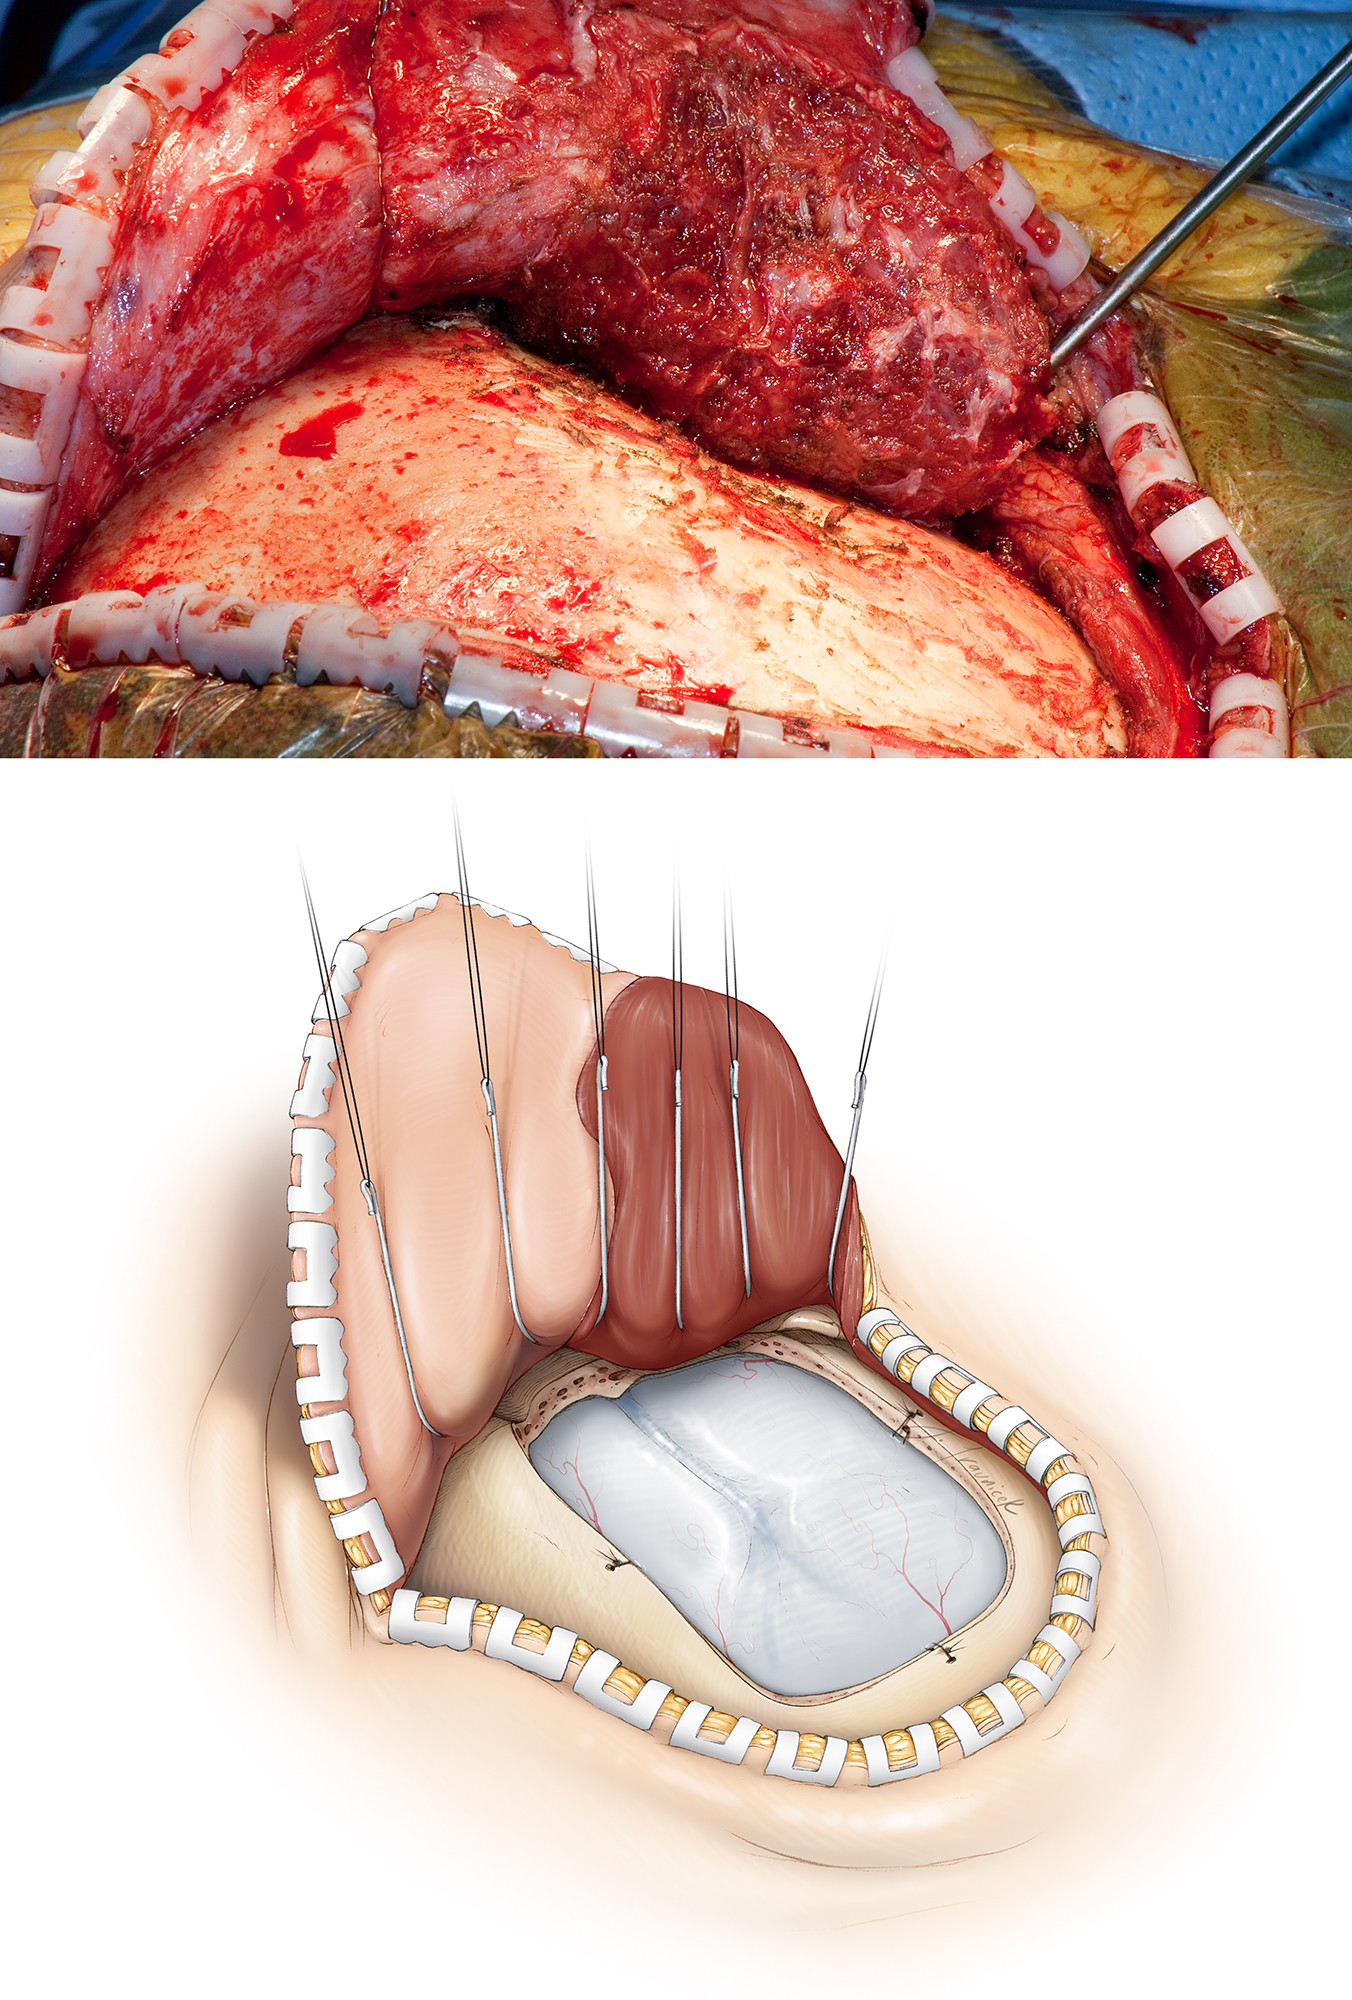 Figure 8: A myocutaneous flap is elevated and a single burr hole is placed at the root of the zygoma or just below the superior temporal line at the posterior aspect of the exposure. A Penfield #3 dissecting instrument mobilizes the dura. A craniotomy is performed as illustrated. An anterior temporal craniectomy exposes the most anterior and inferior aspects of the temporal fossa so that I can direct my microscope's view relatively parallel to the axis of the hippocampus during the later stages of dissection. A curvilinear dural incision affords reflection of the dural flap anteriorly so that the temporal tip is nearly reachable.